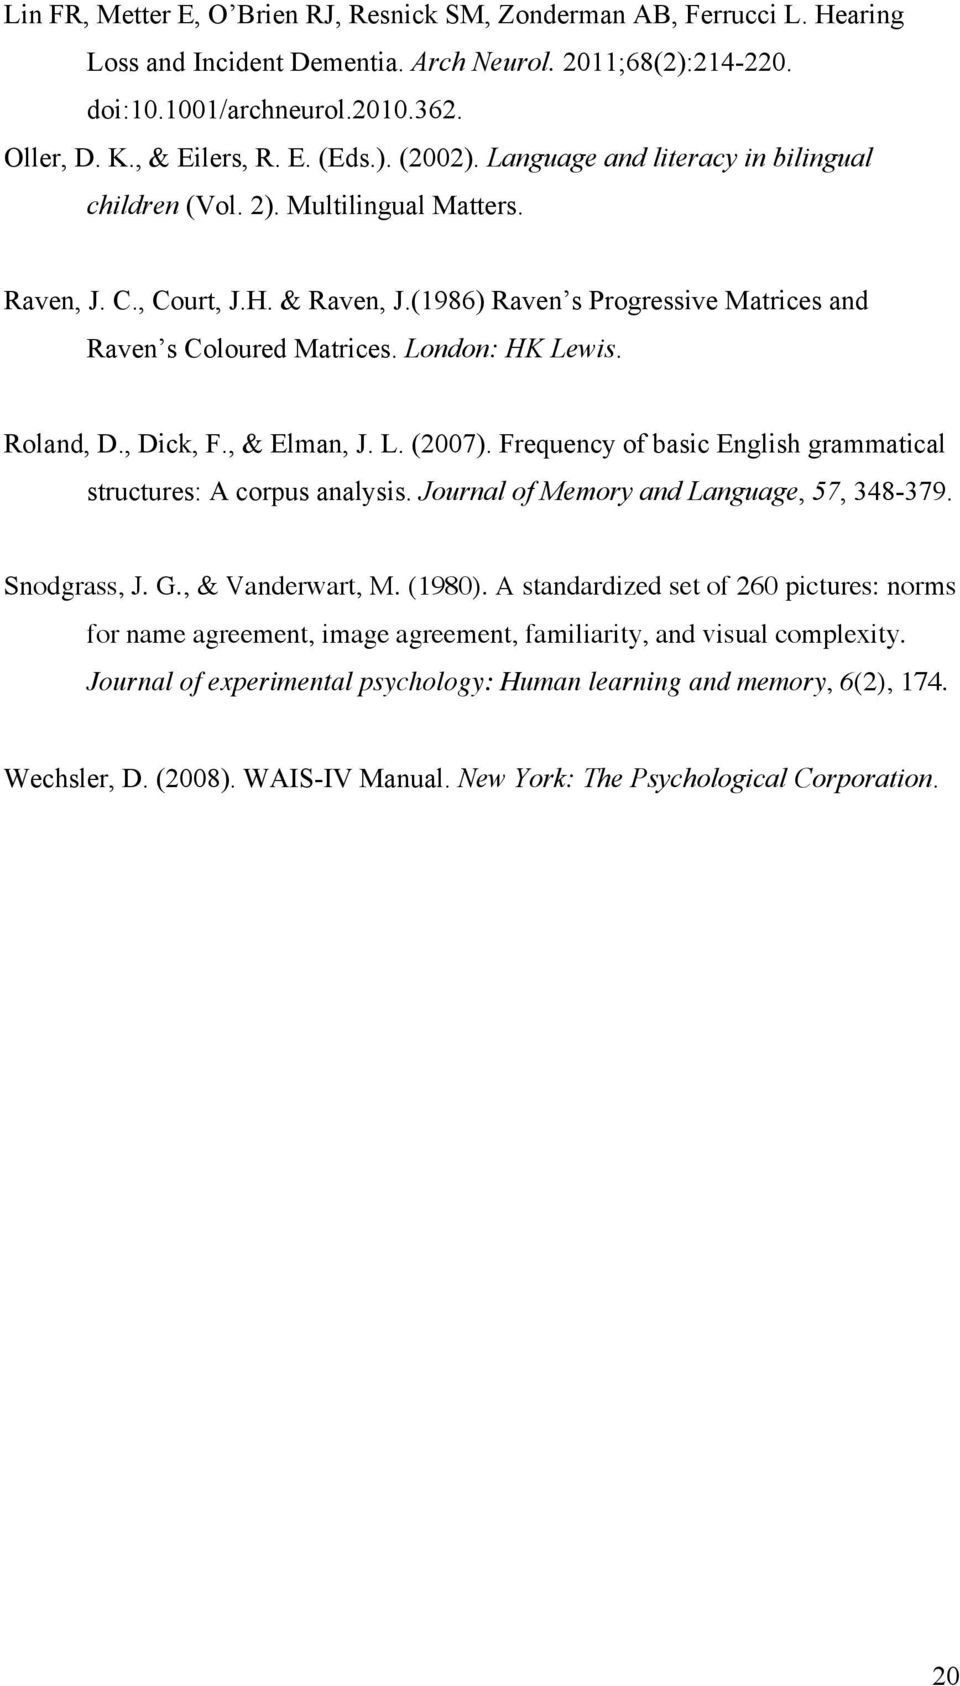 London: HK Lewis. Roland, D., Dick, F., & Elman, J. L. (2007). Frequency of basic English grammatical structures: A corpus analysis. Journal of Memory and Language, 57, 348-379. Snodgrass, J. G.